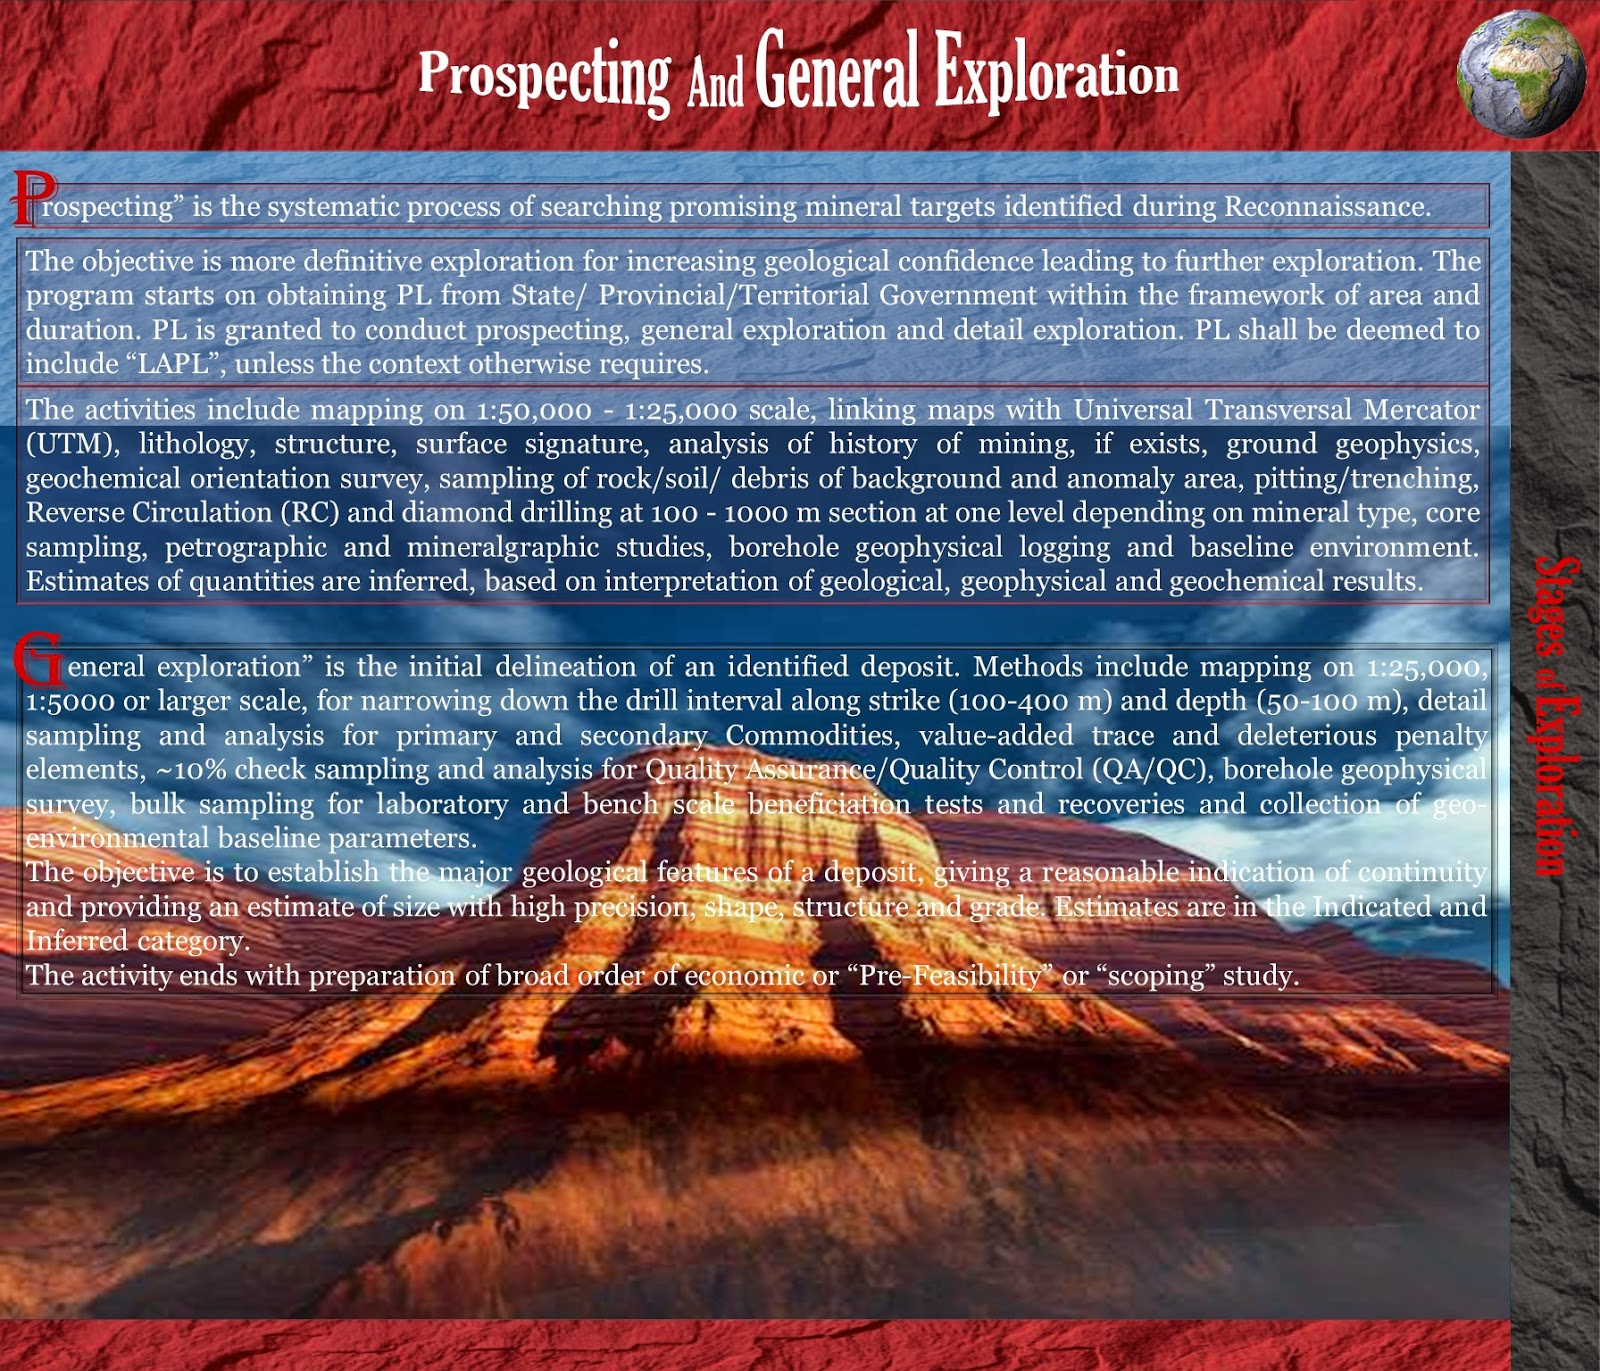 Prospecting And General Exploration